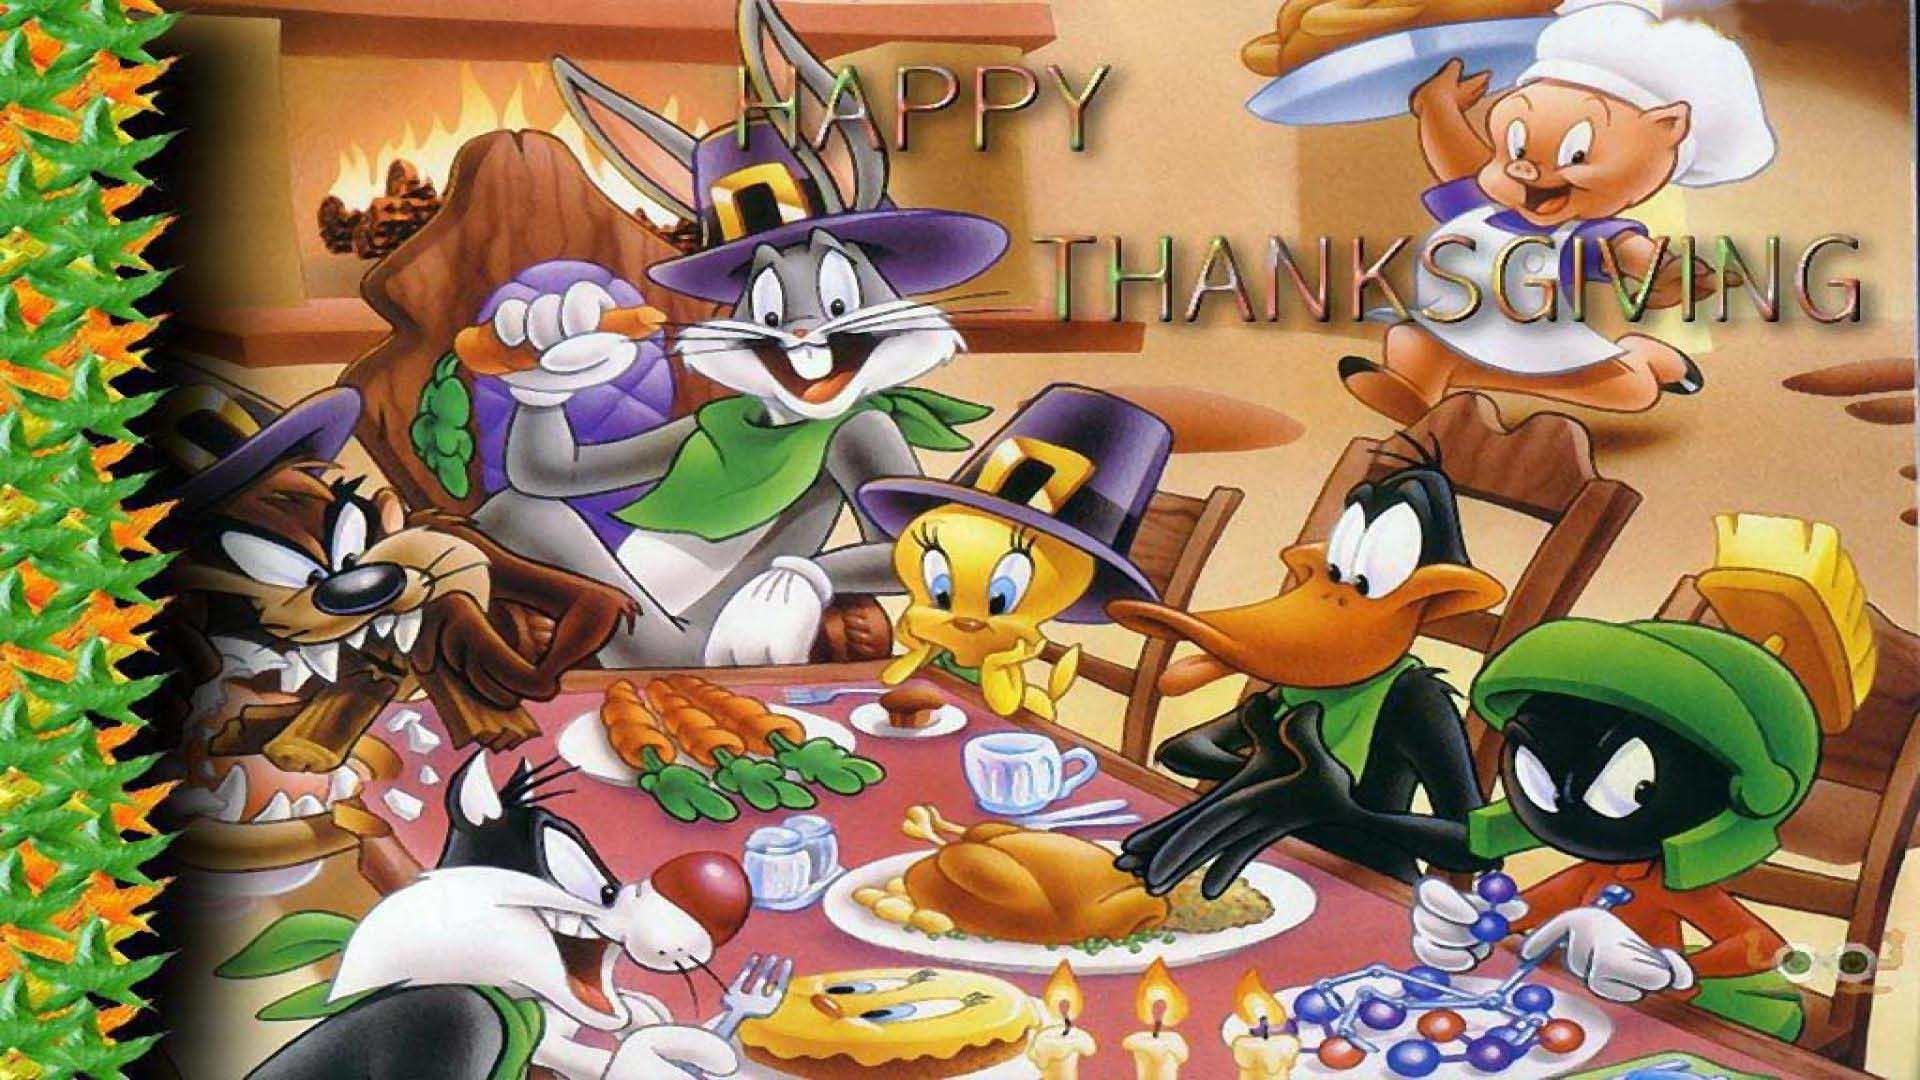 1920x1080 Disney Thanksgiving Wallpaper